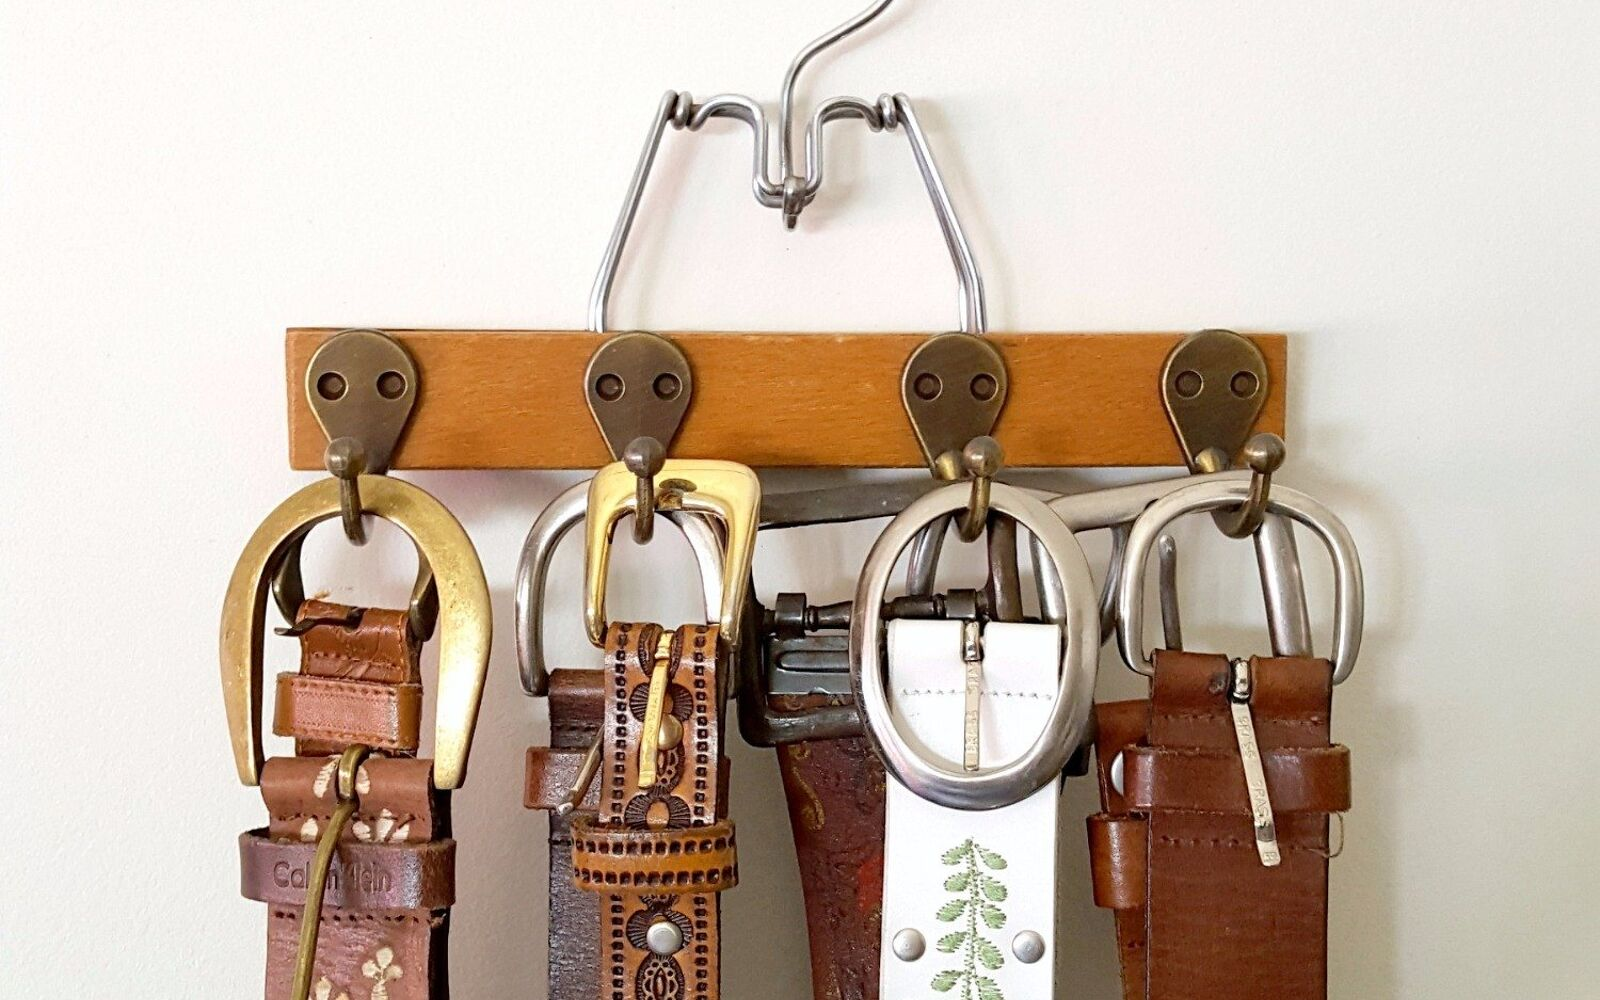 s 30 fun ways to keep your home organized, Get Your Belts In Order With A Mini Hanger